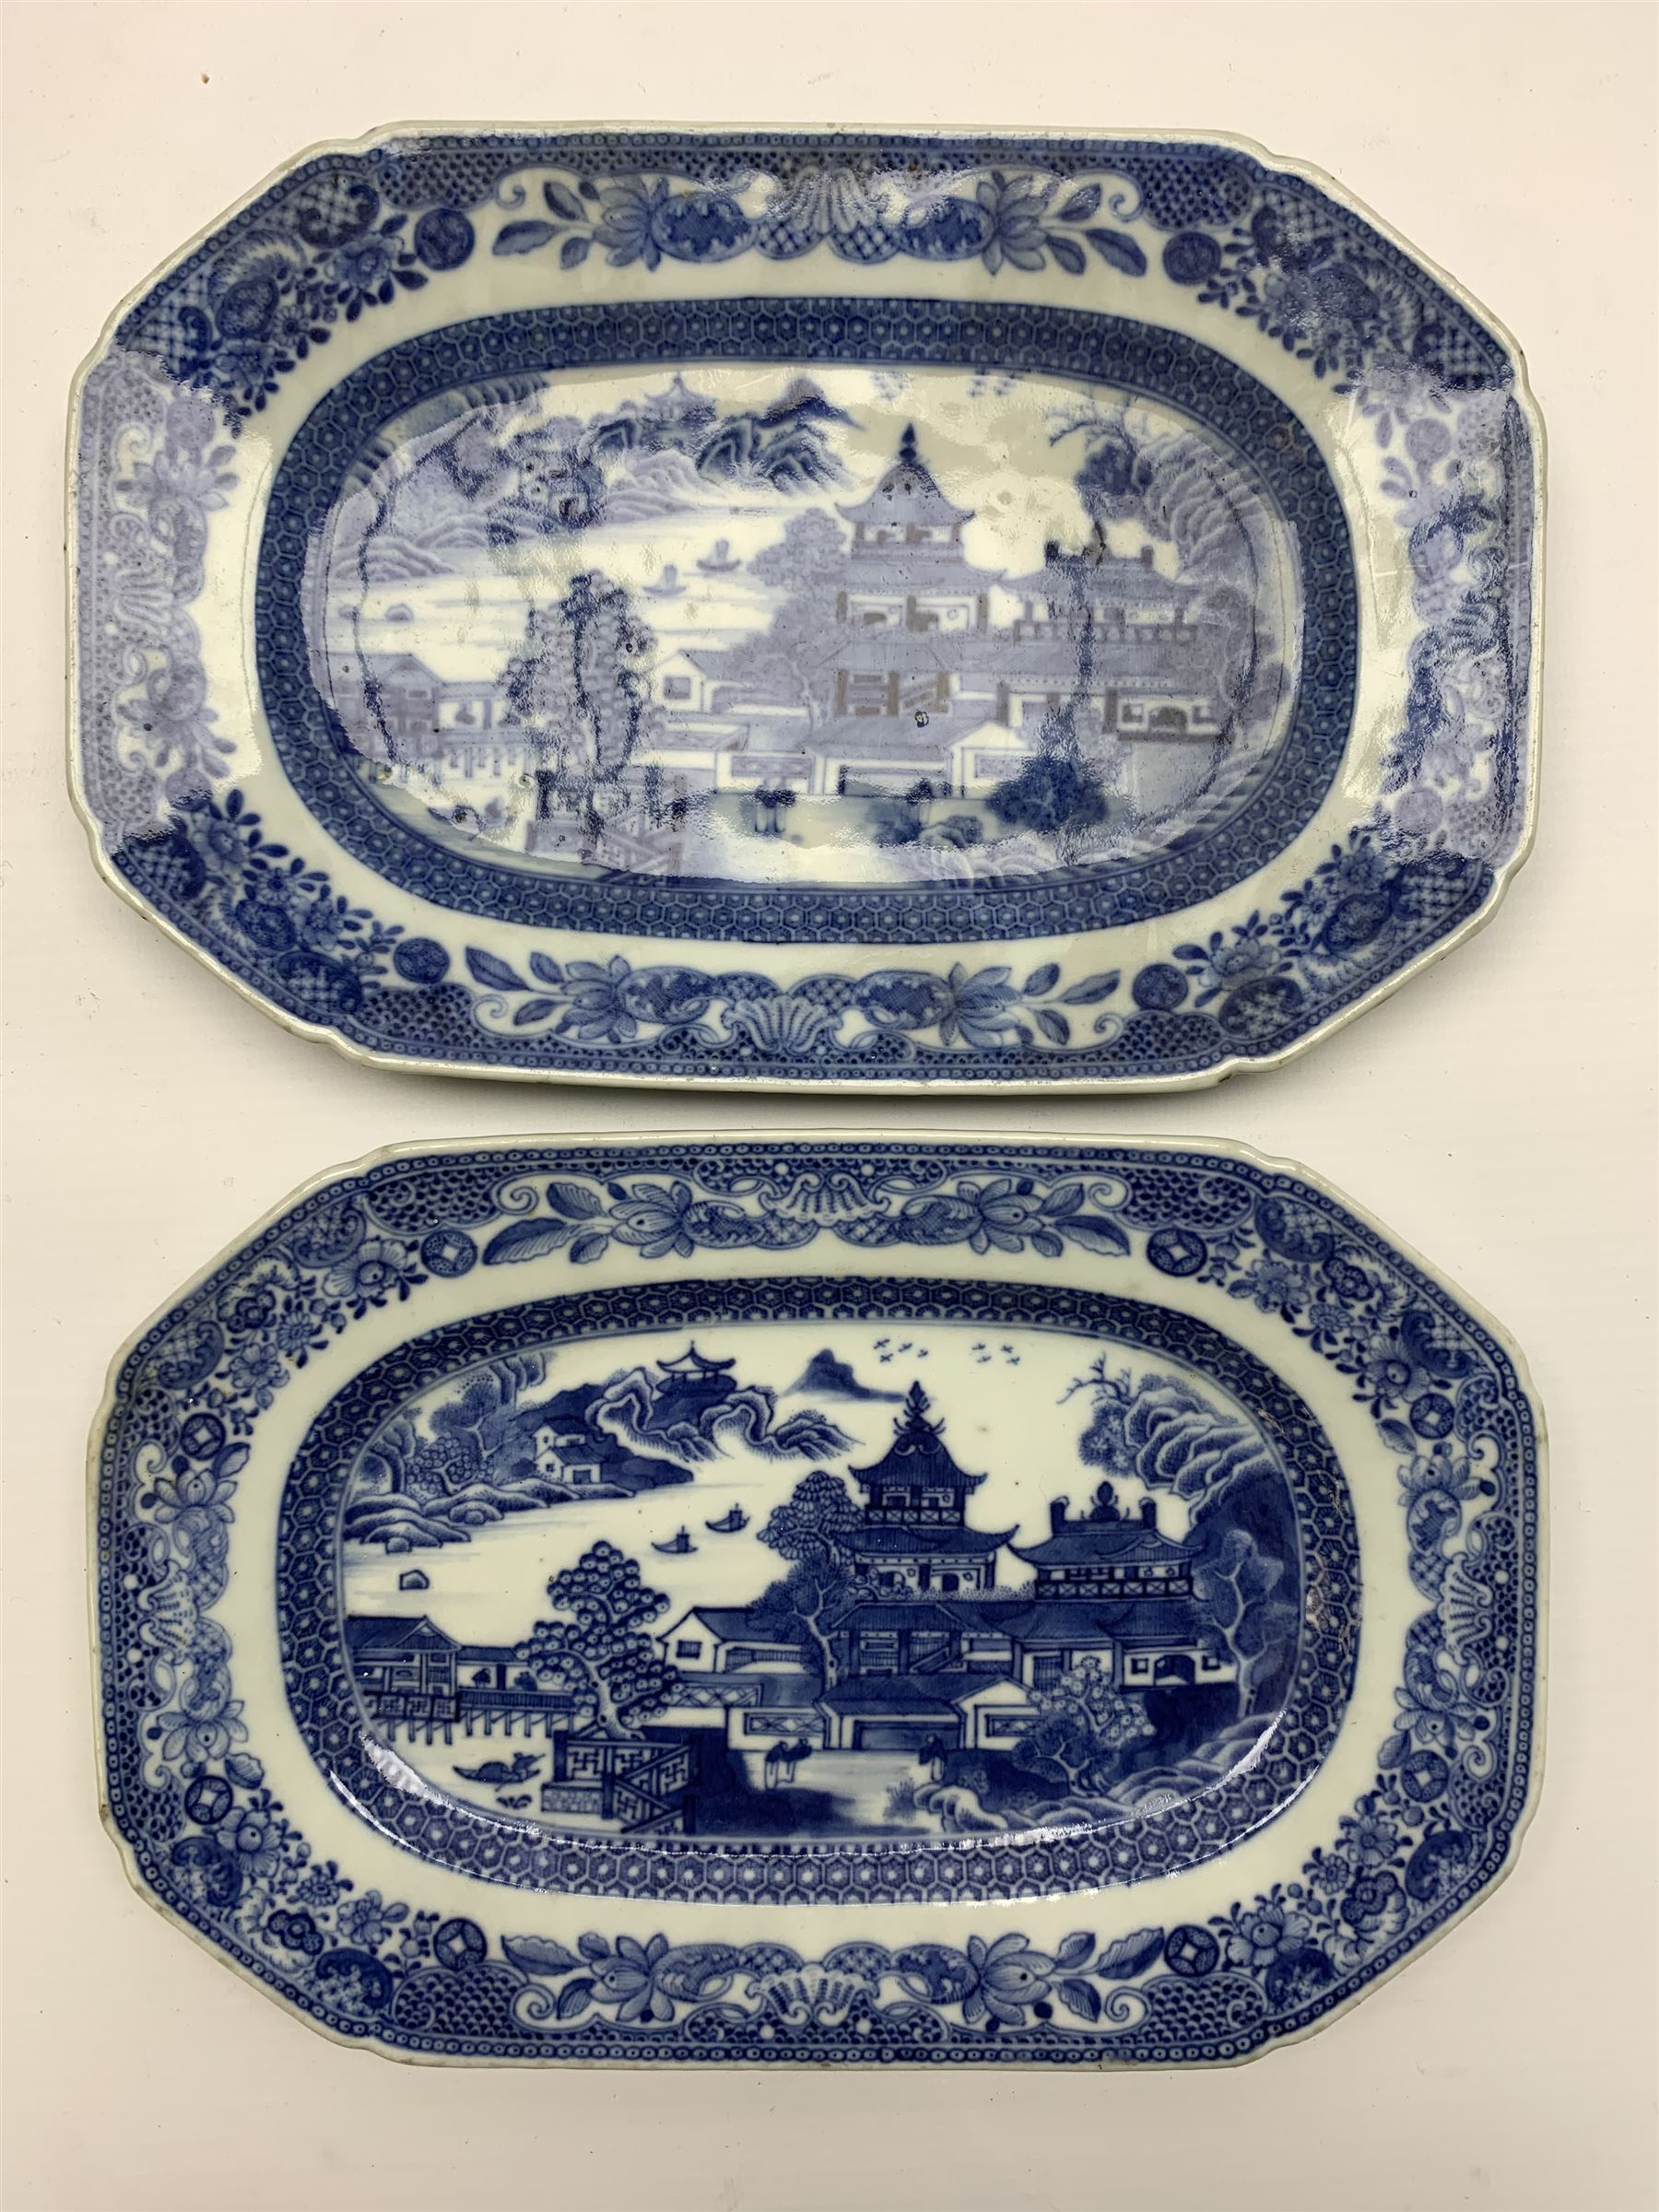 Late 18th/early 19th century Chinese export blue and white forty seven piece part dinner service - Image 15 of 20